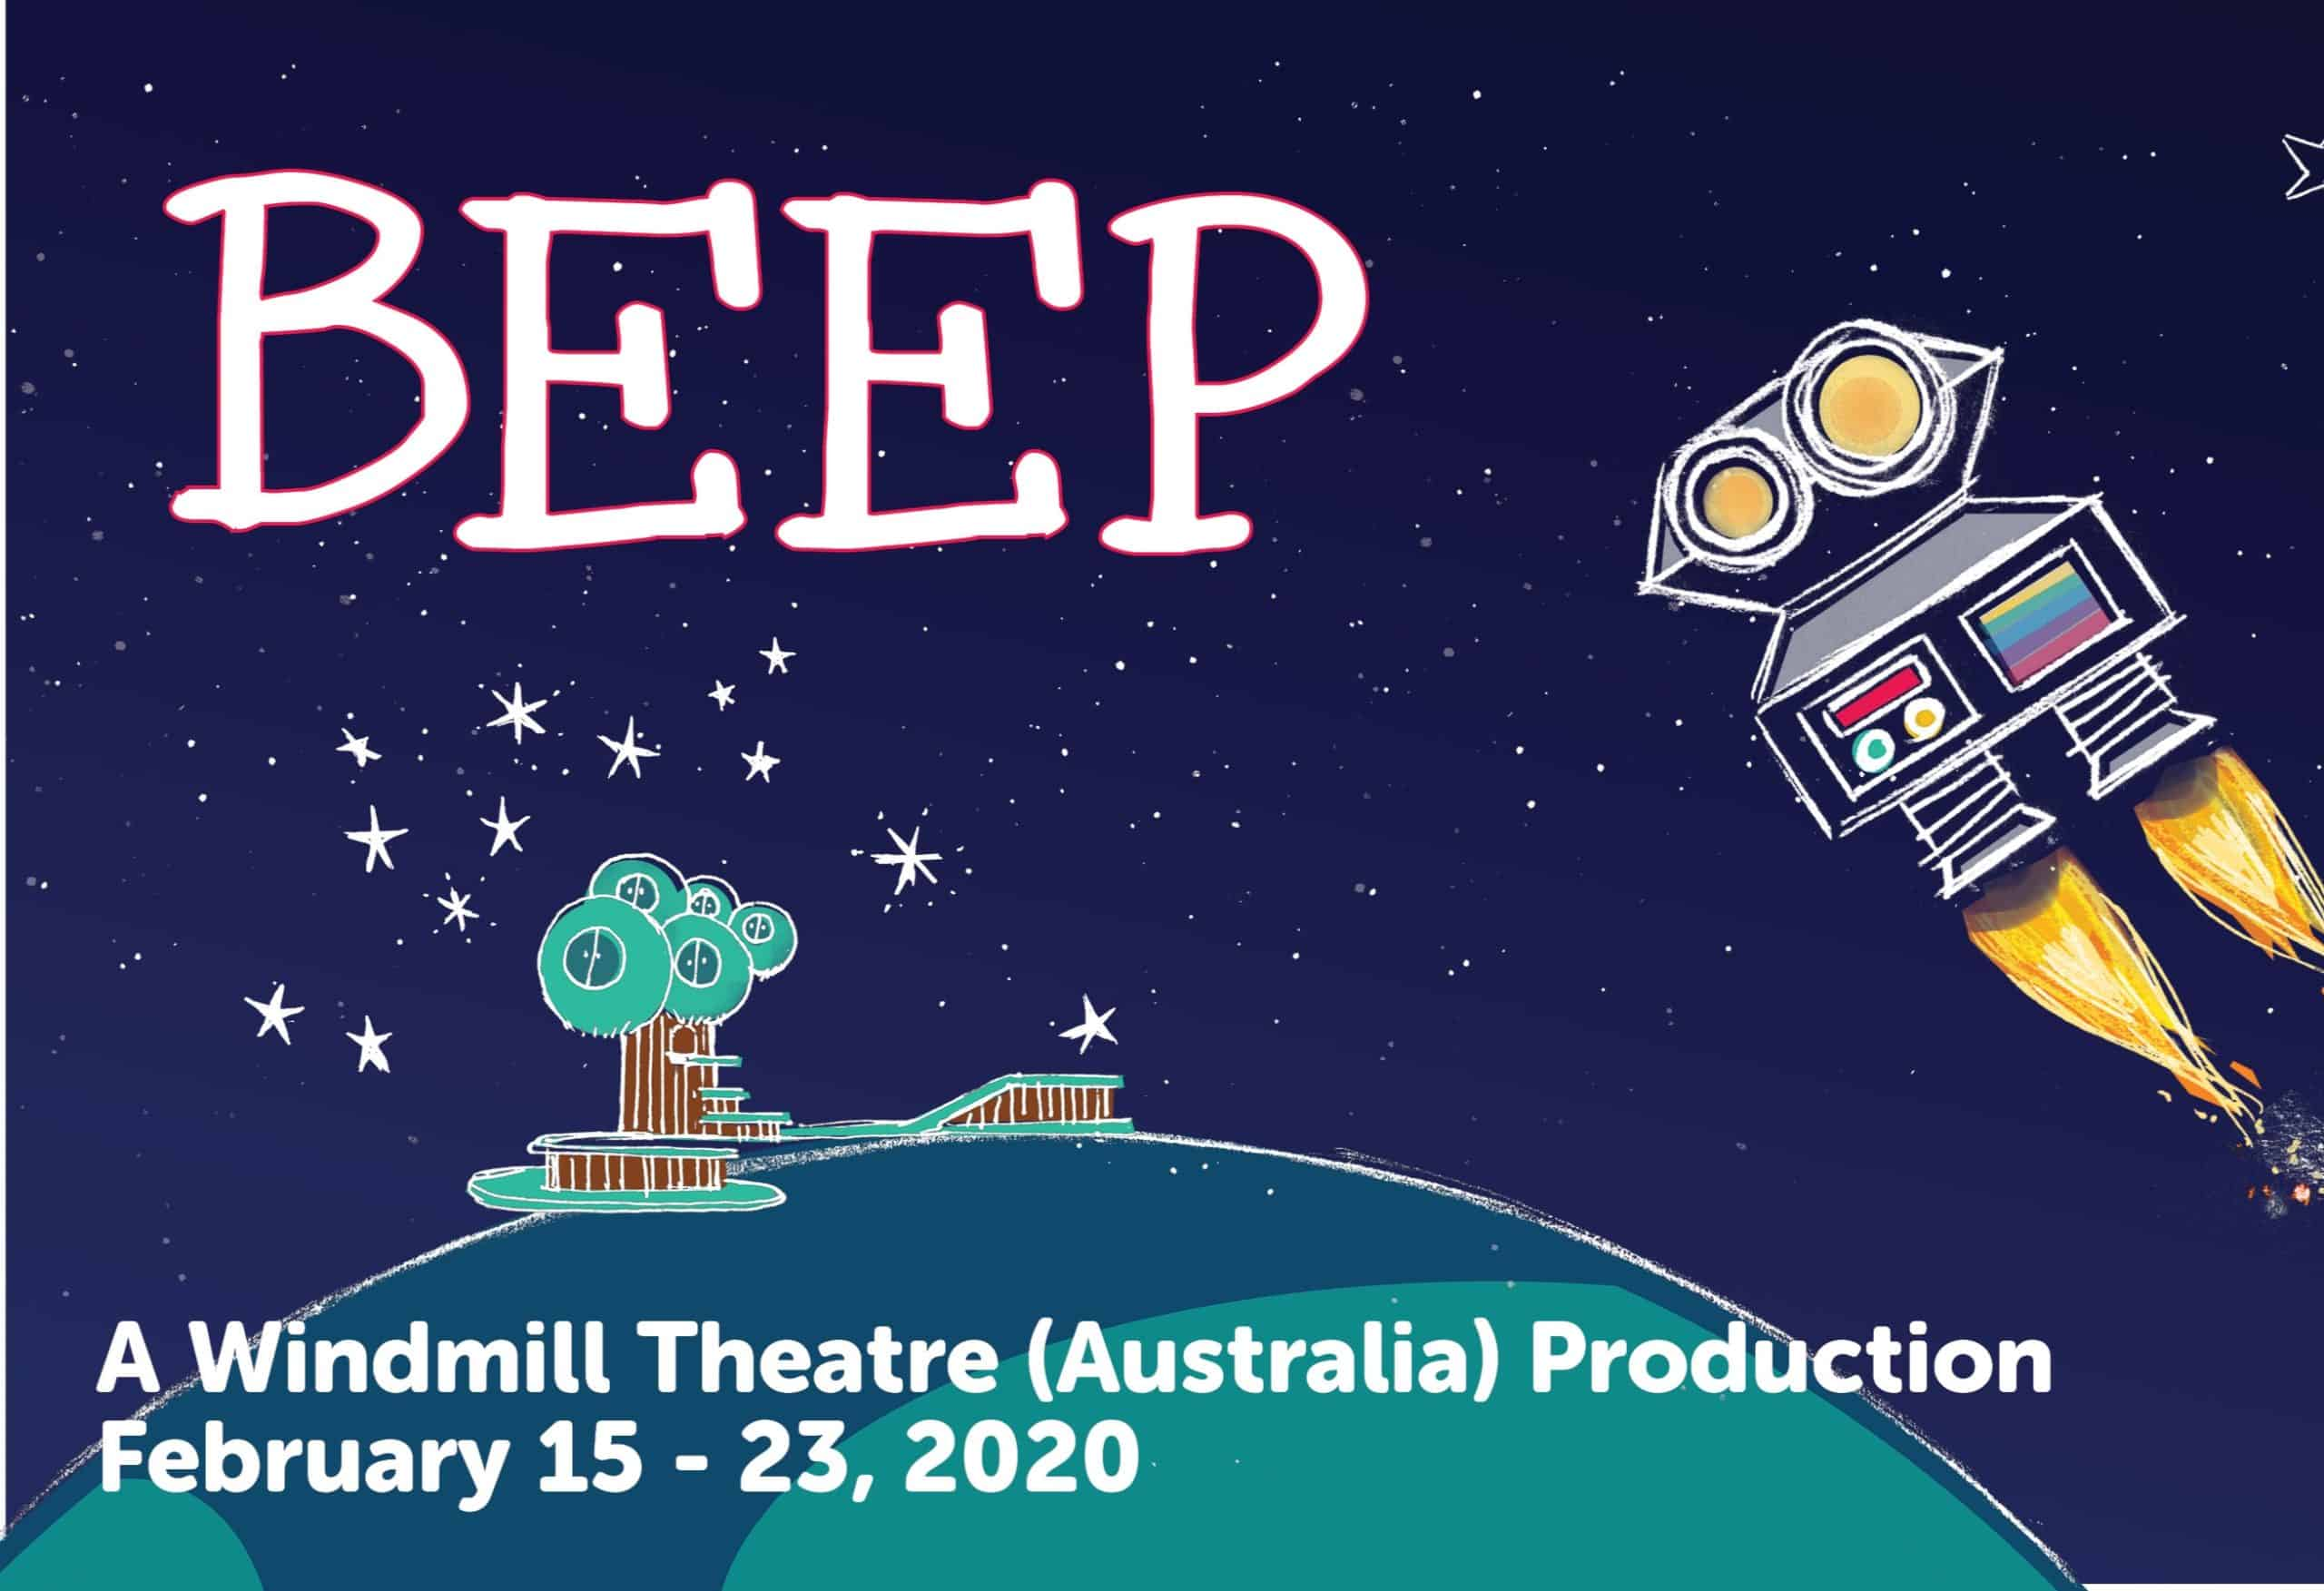 BEEP poster